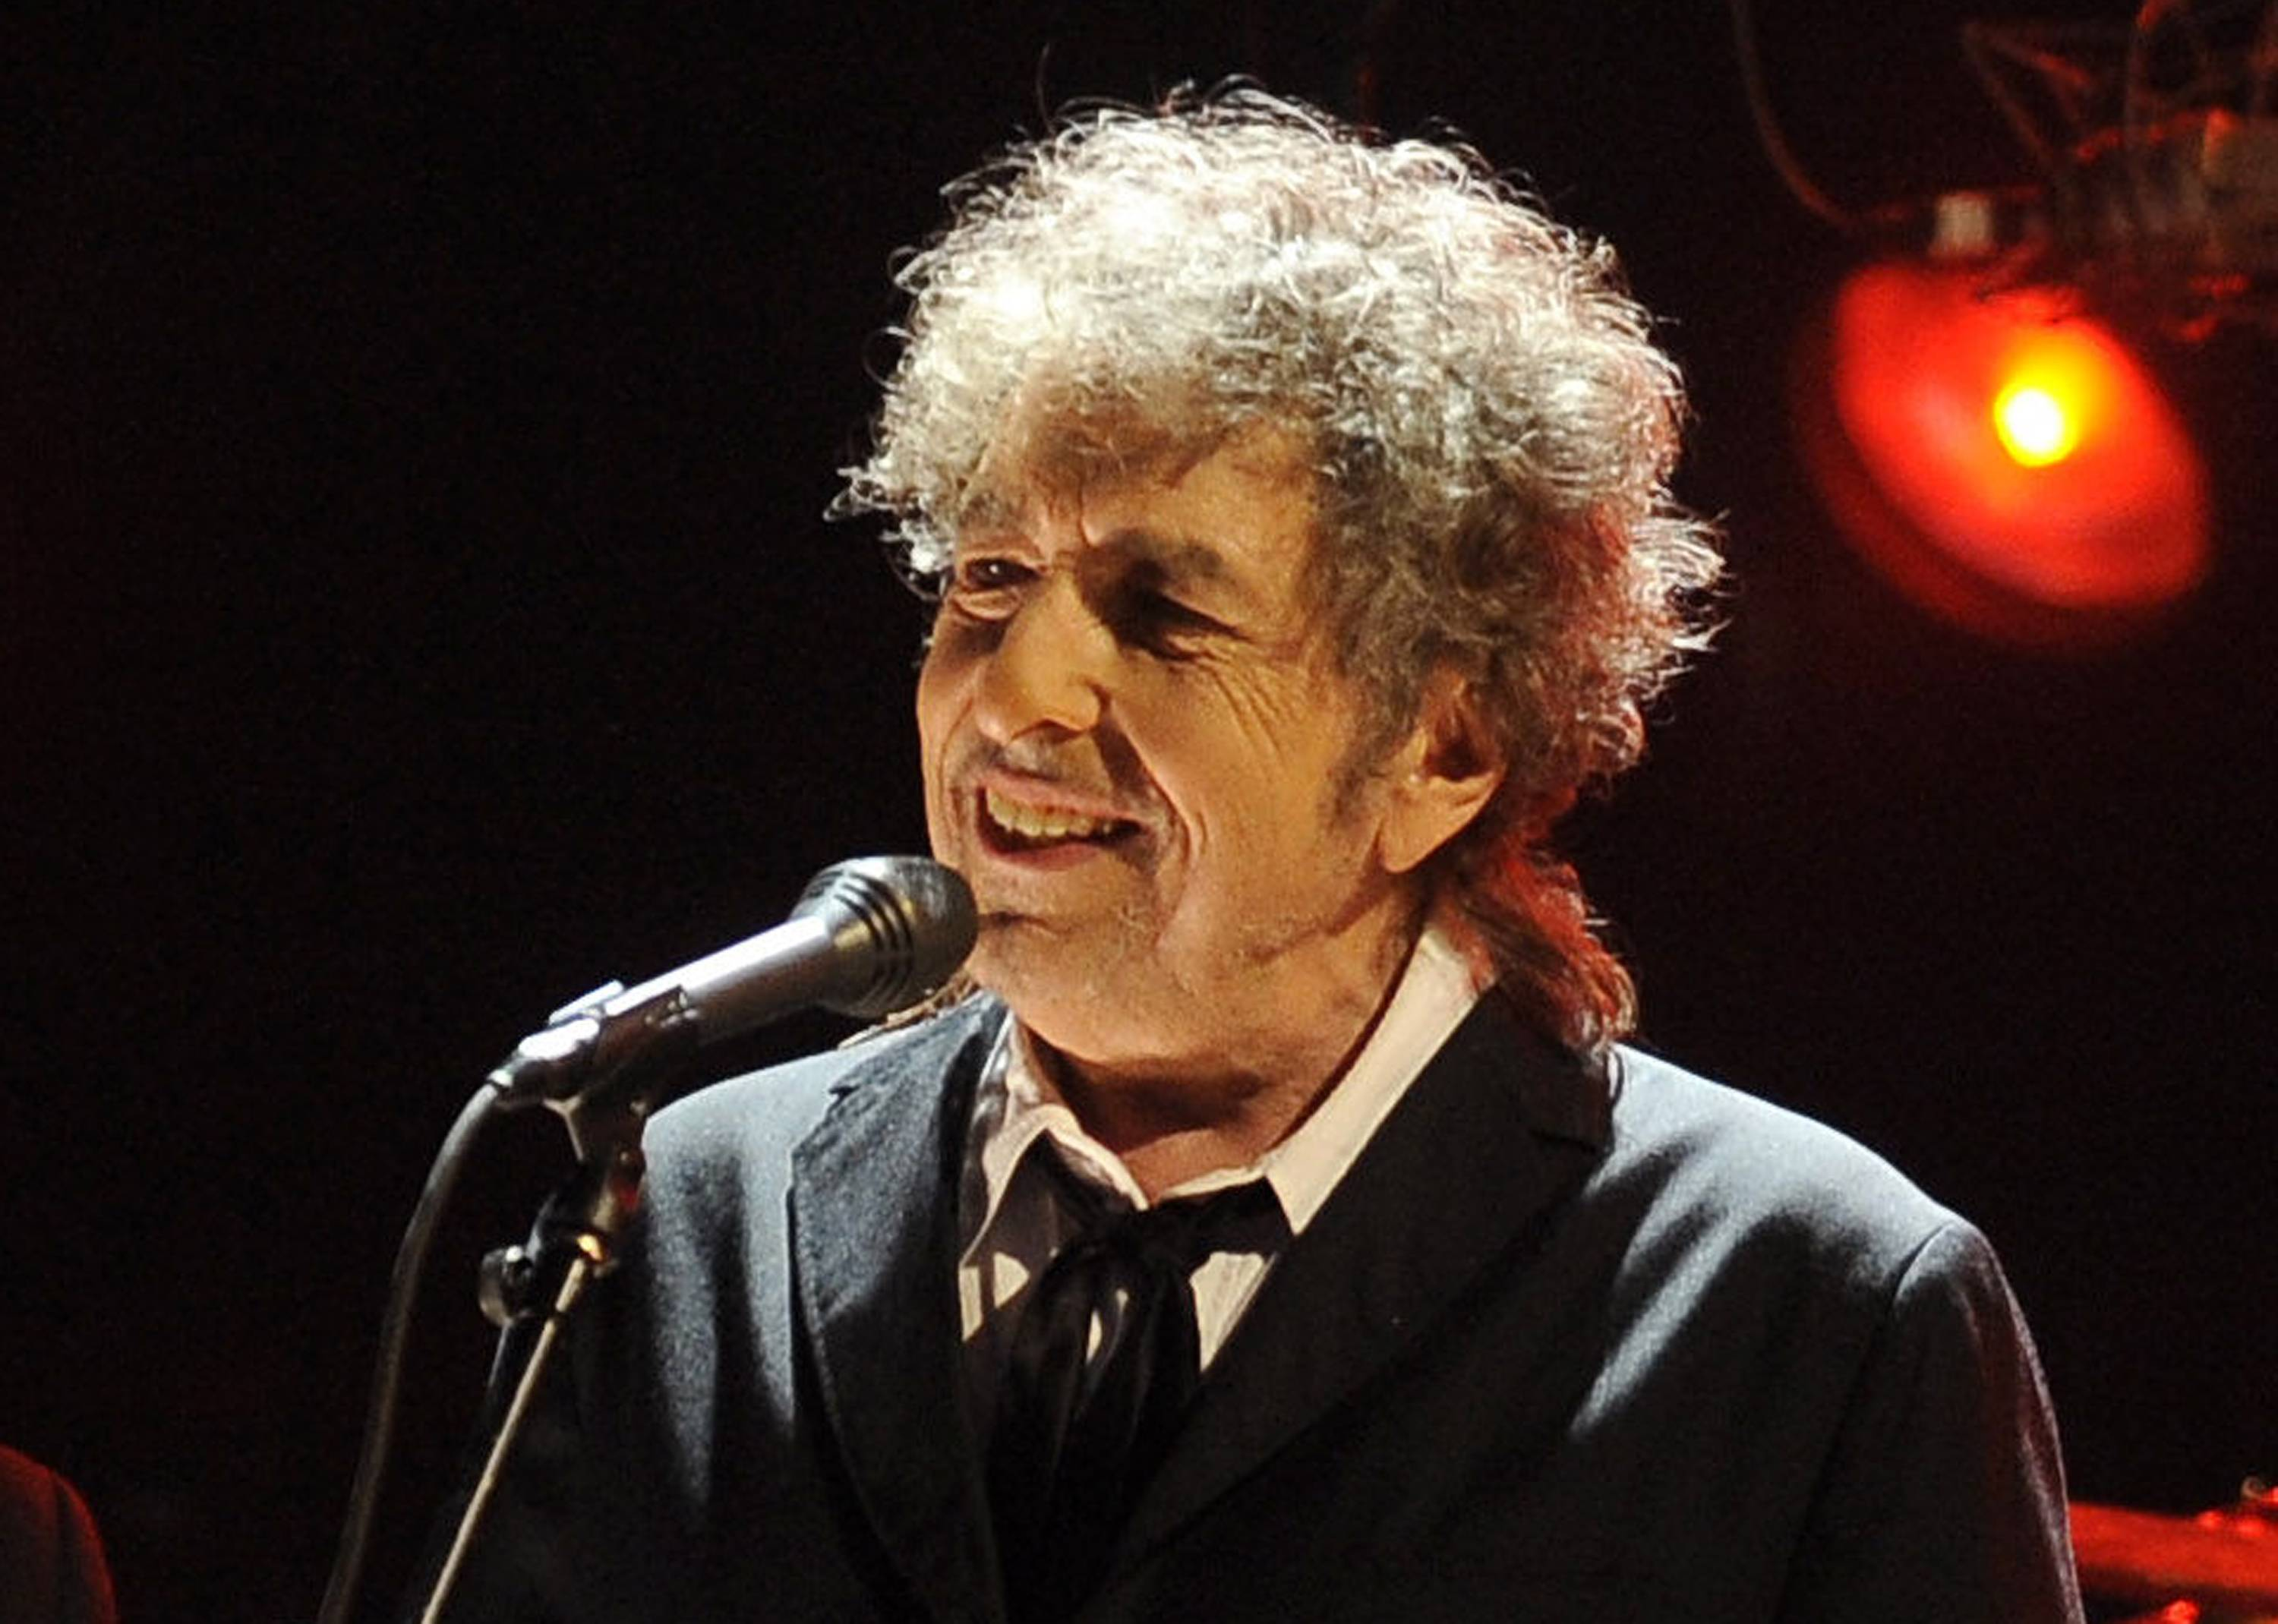 Bob Dylan performs with Mavis Staples at the Ravinia Festival in Highland Park on Friday, June 24.